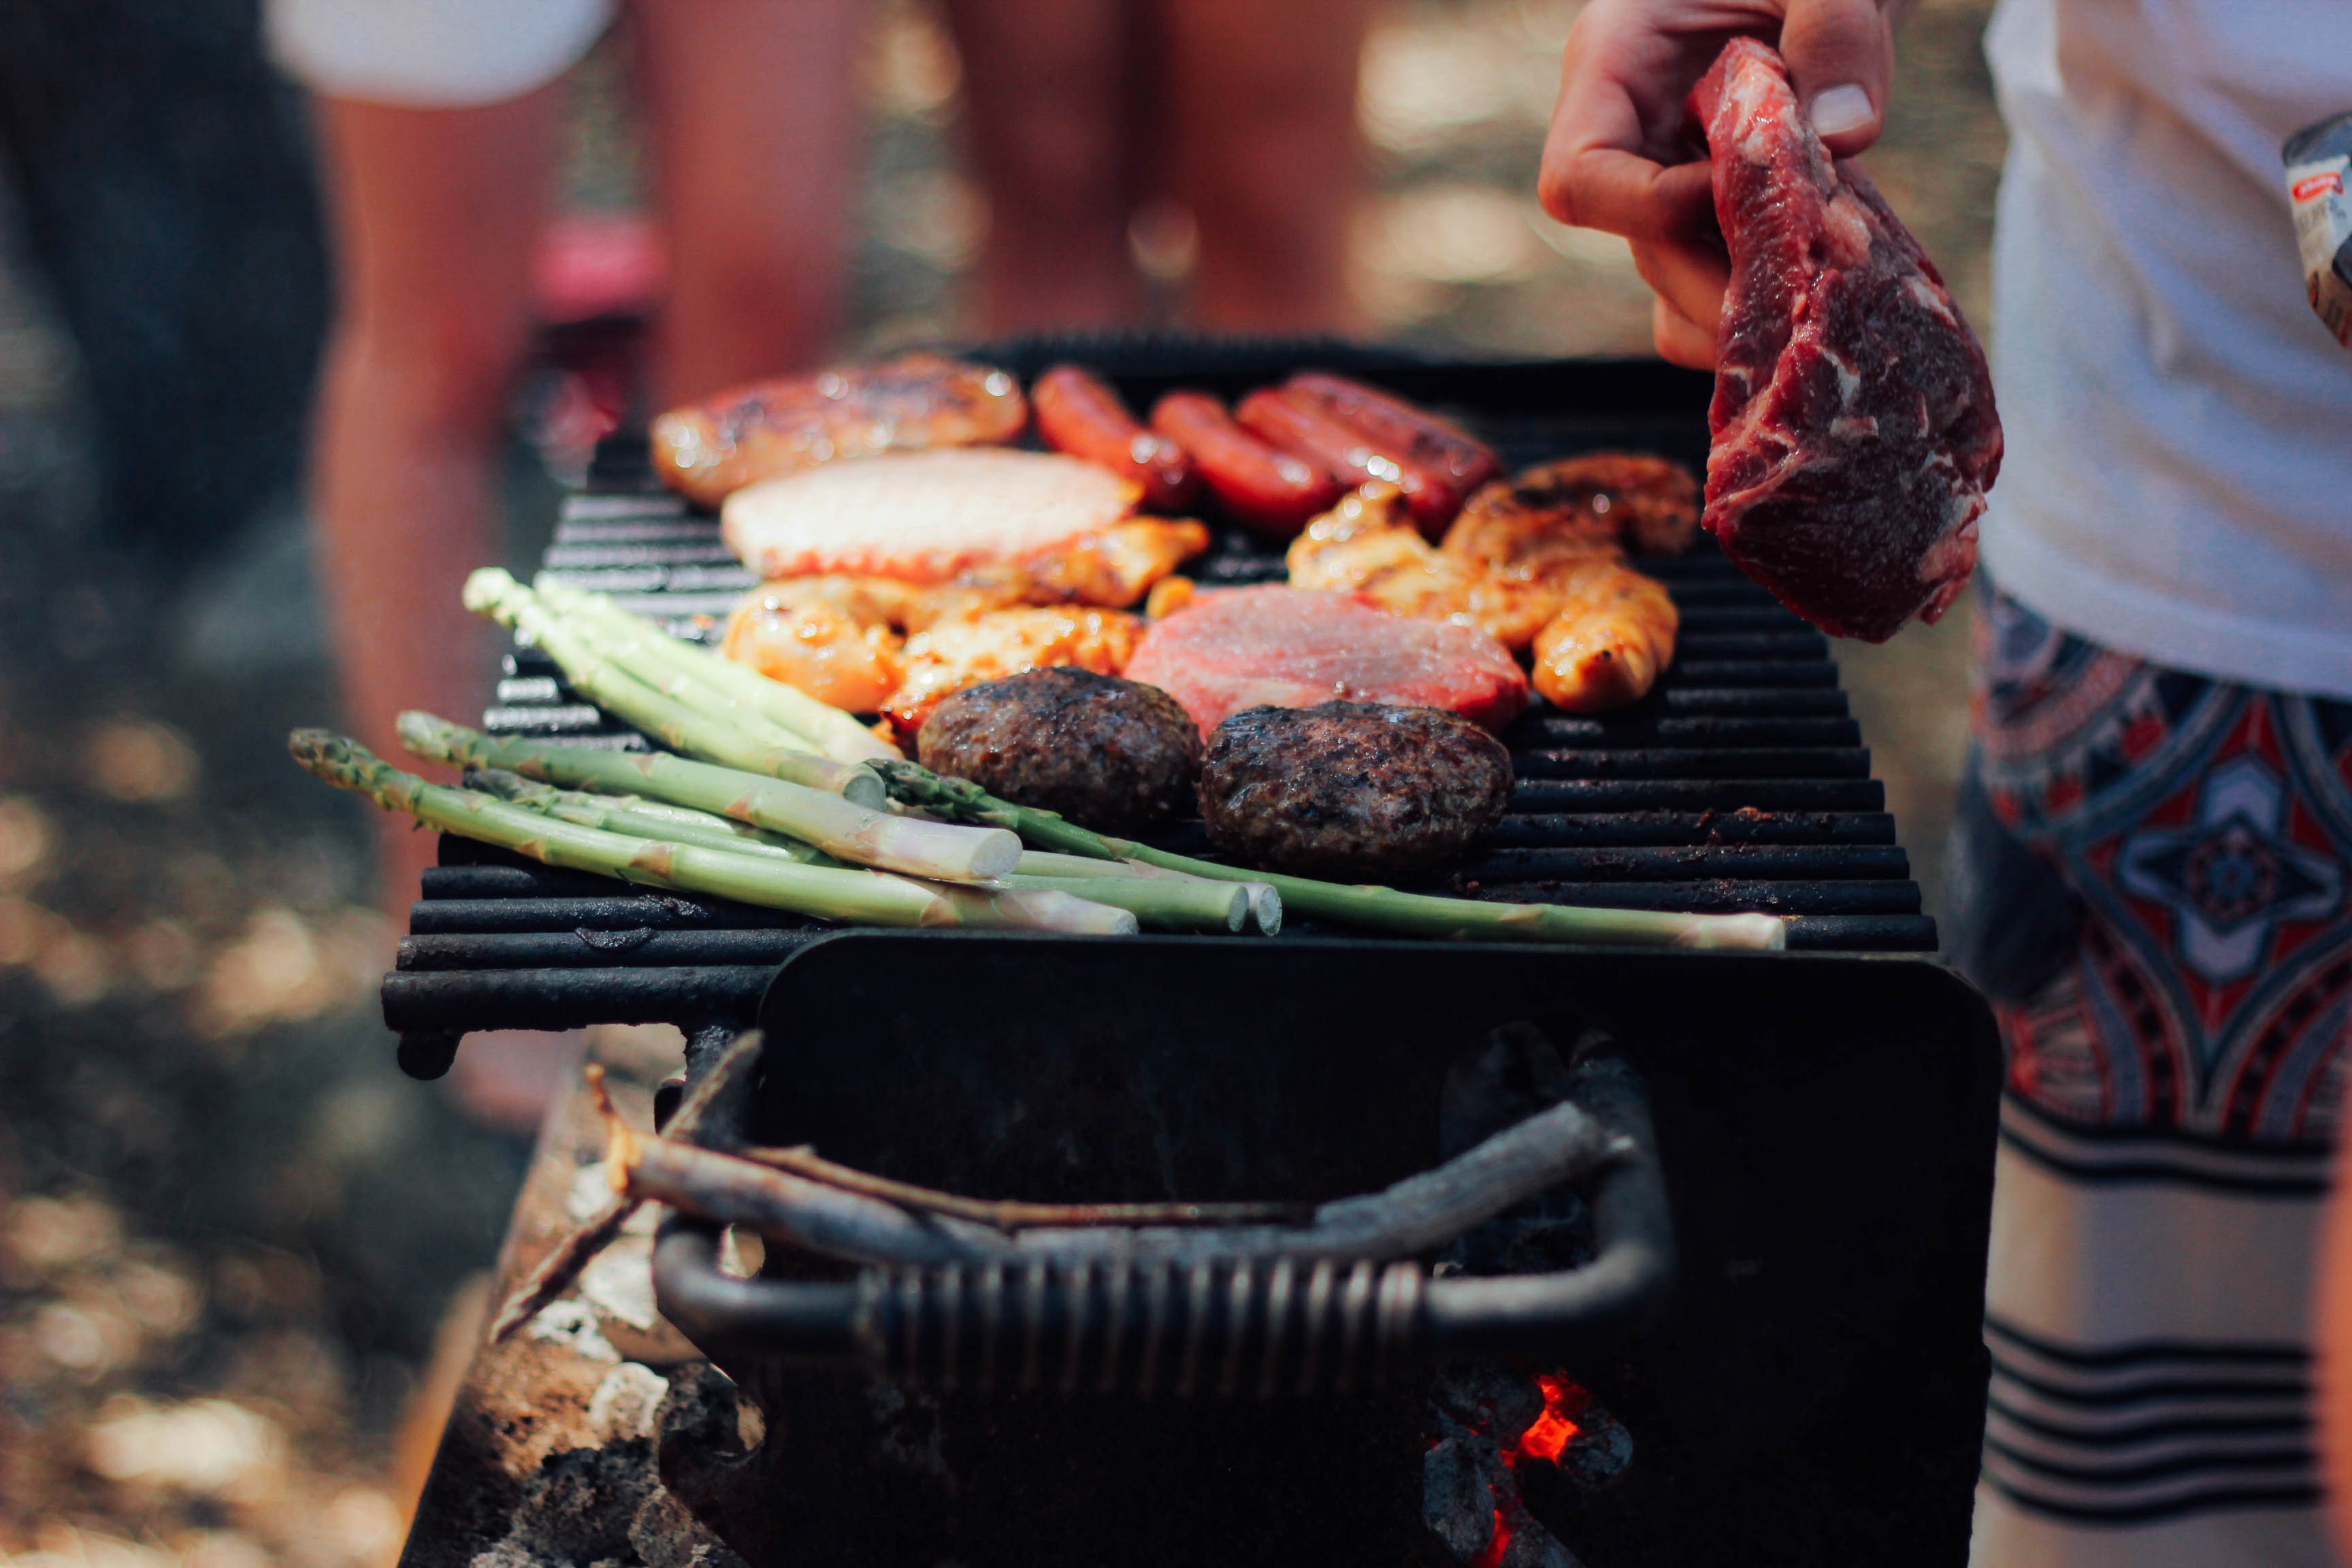 A charcoal grill with meat, burgers, hot dogs, and asparagus at a BBQ